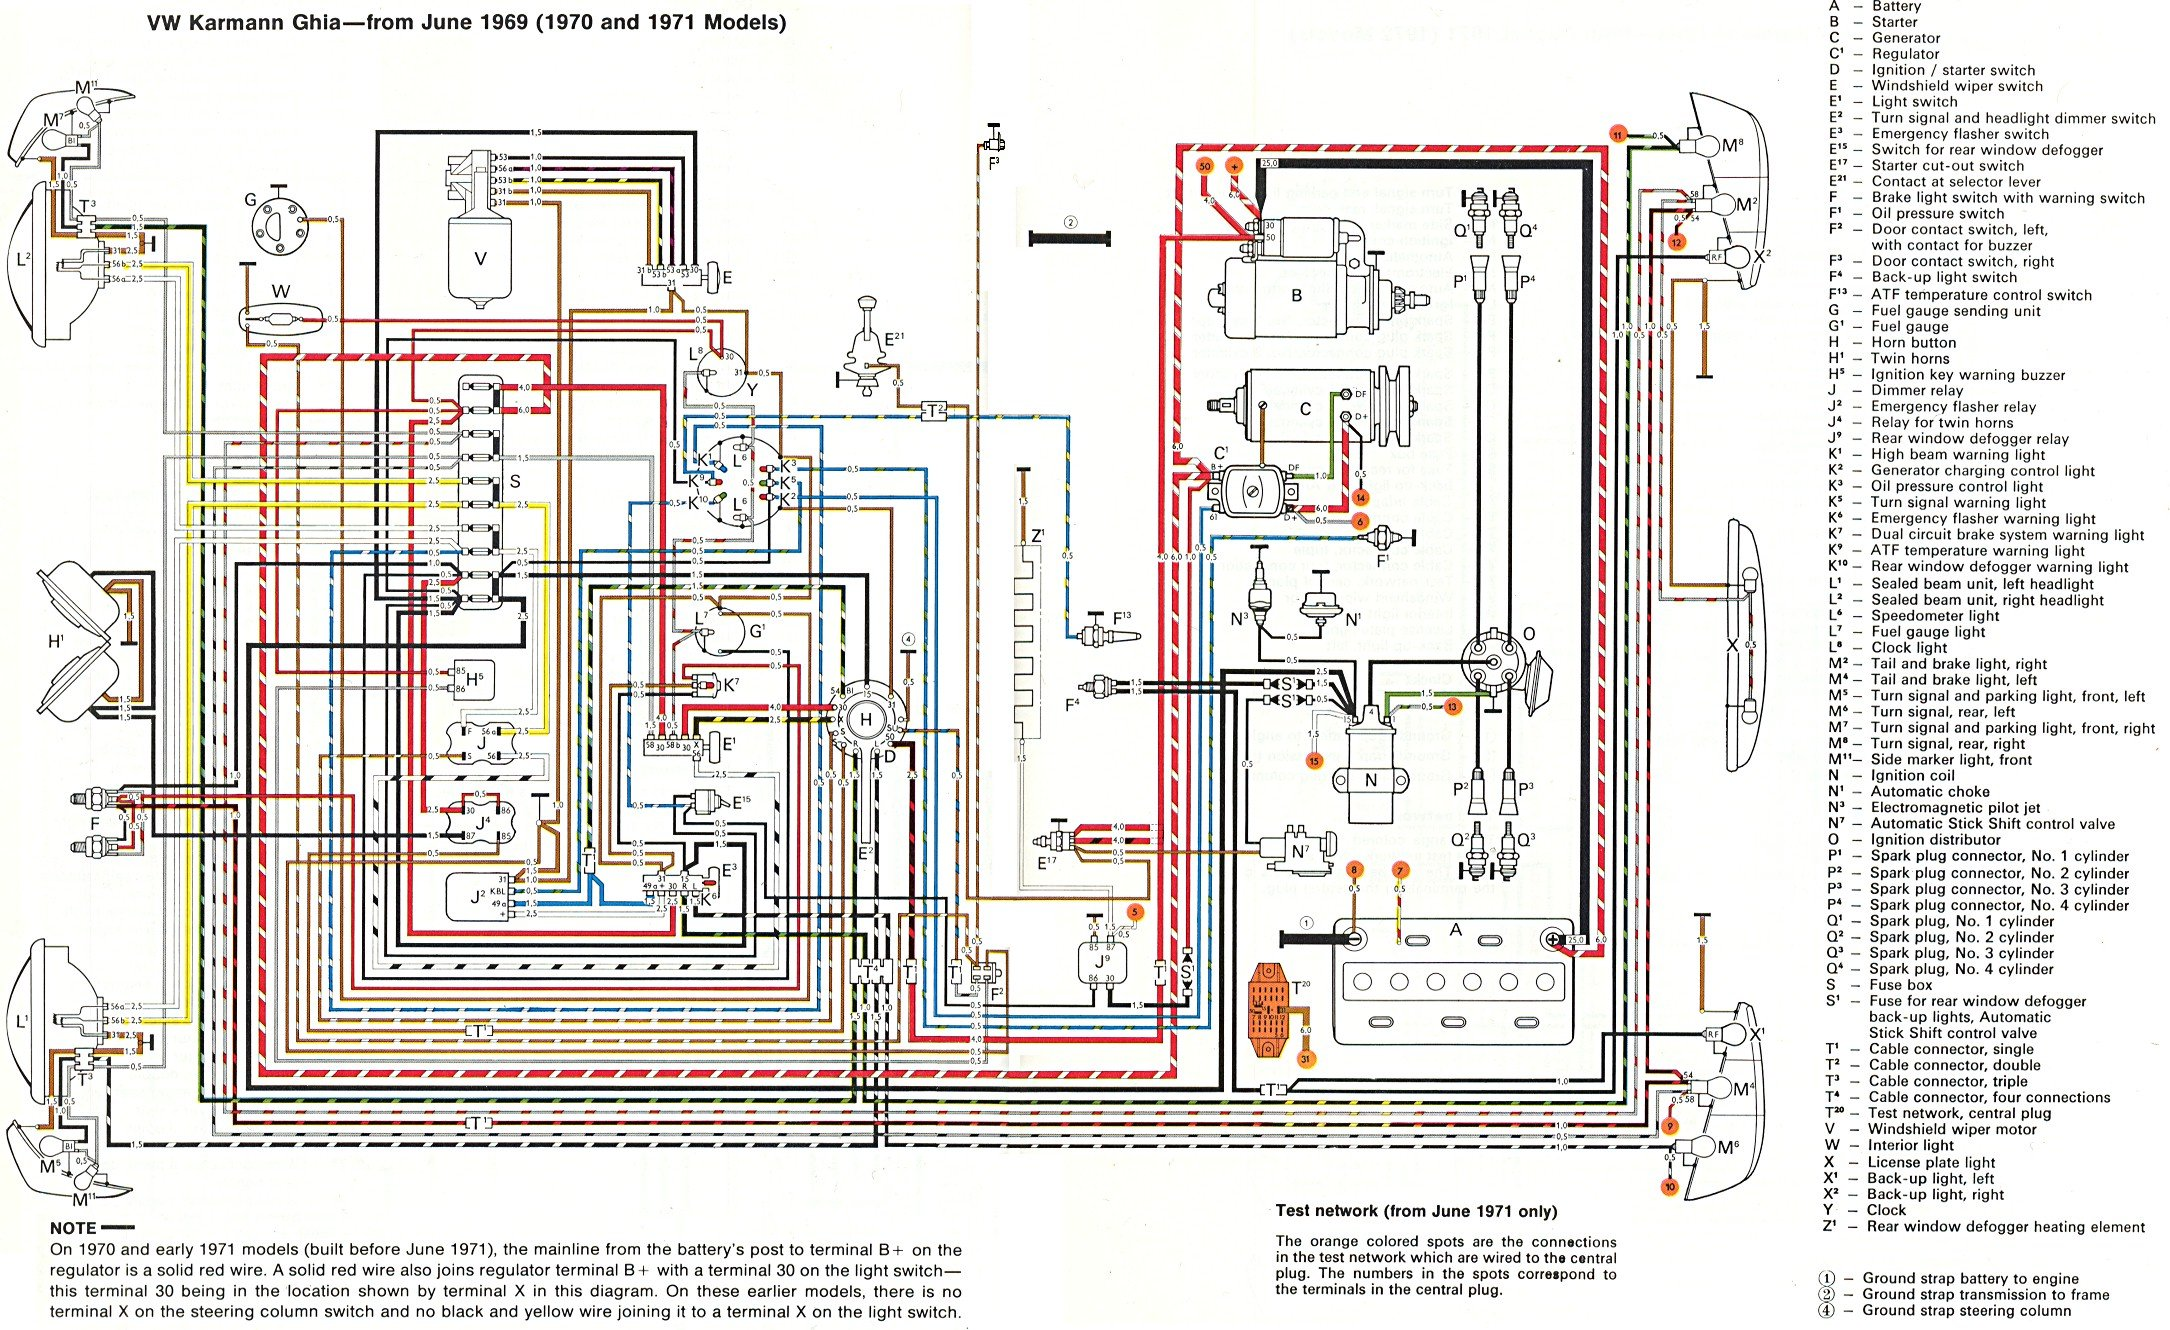 Late 1970 Corvette Wiring Diagram together with 72 C10 Dash Wiring Diagram also 52 992 in addition Wiring also 1ggnz 65 Mustang Coupe A Picture Rough Schematic Mounted. on 1972 chevelle wiper motor wiring